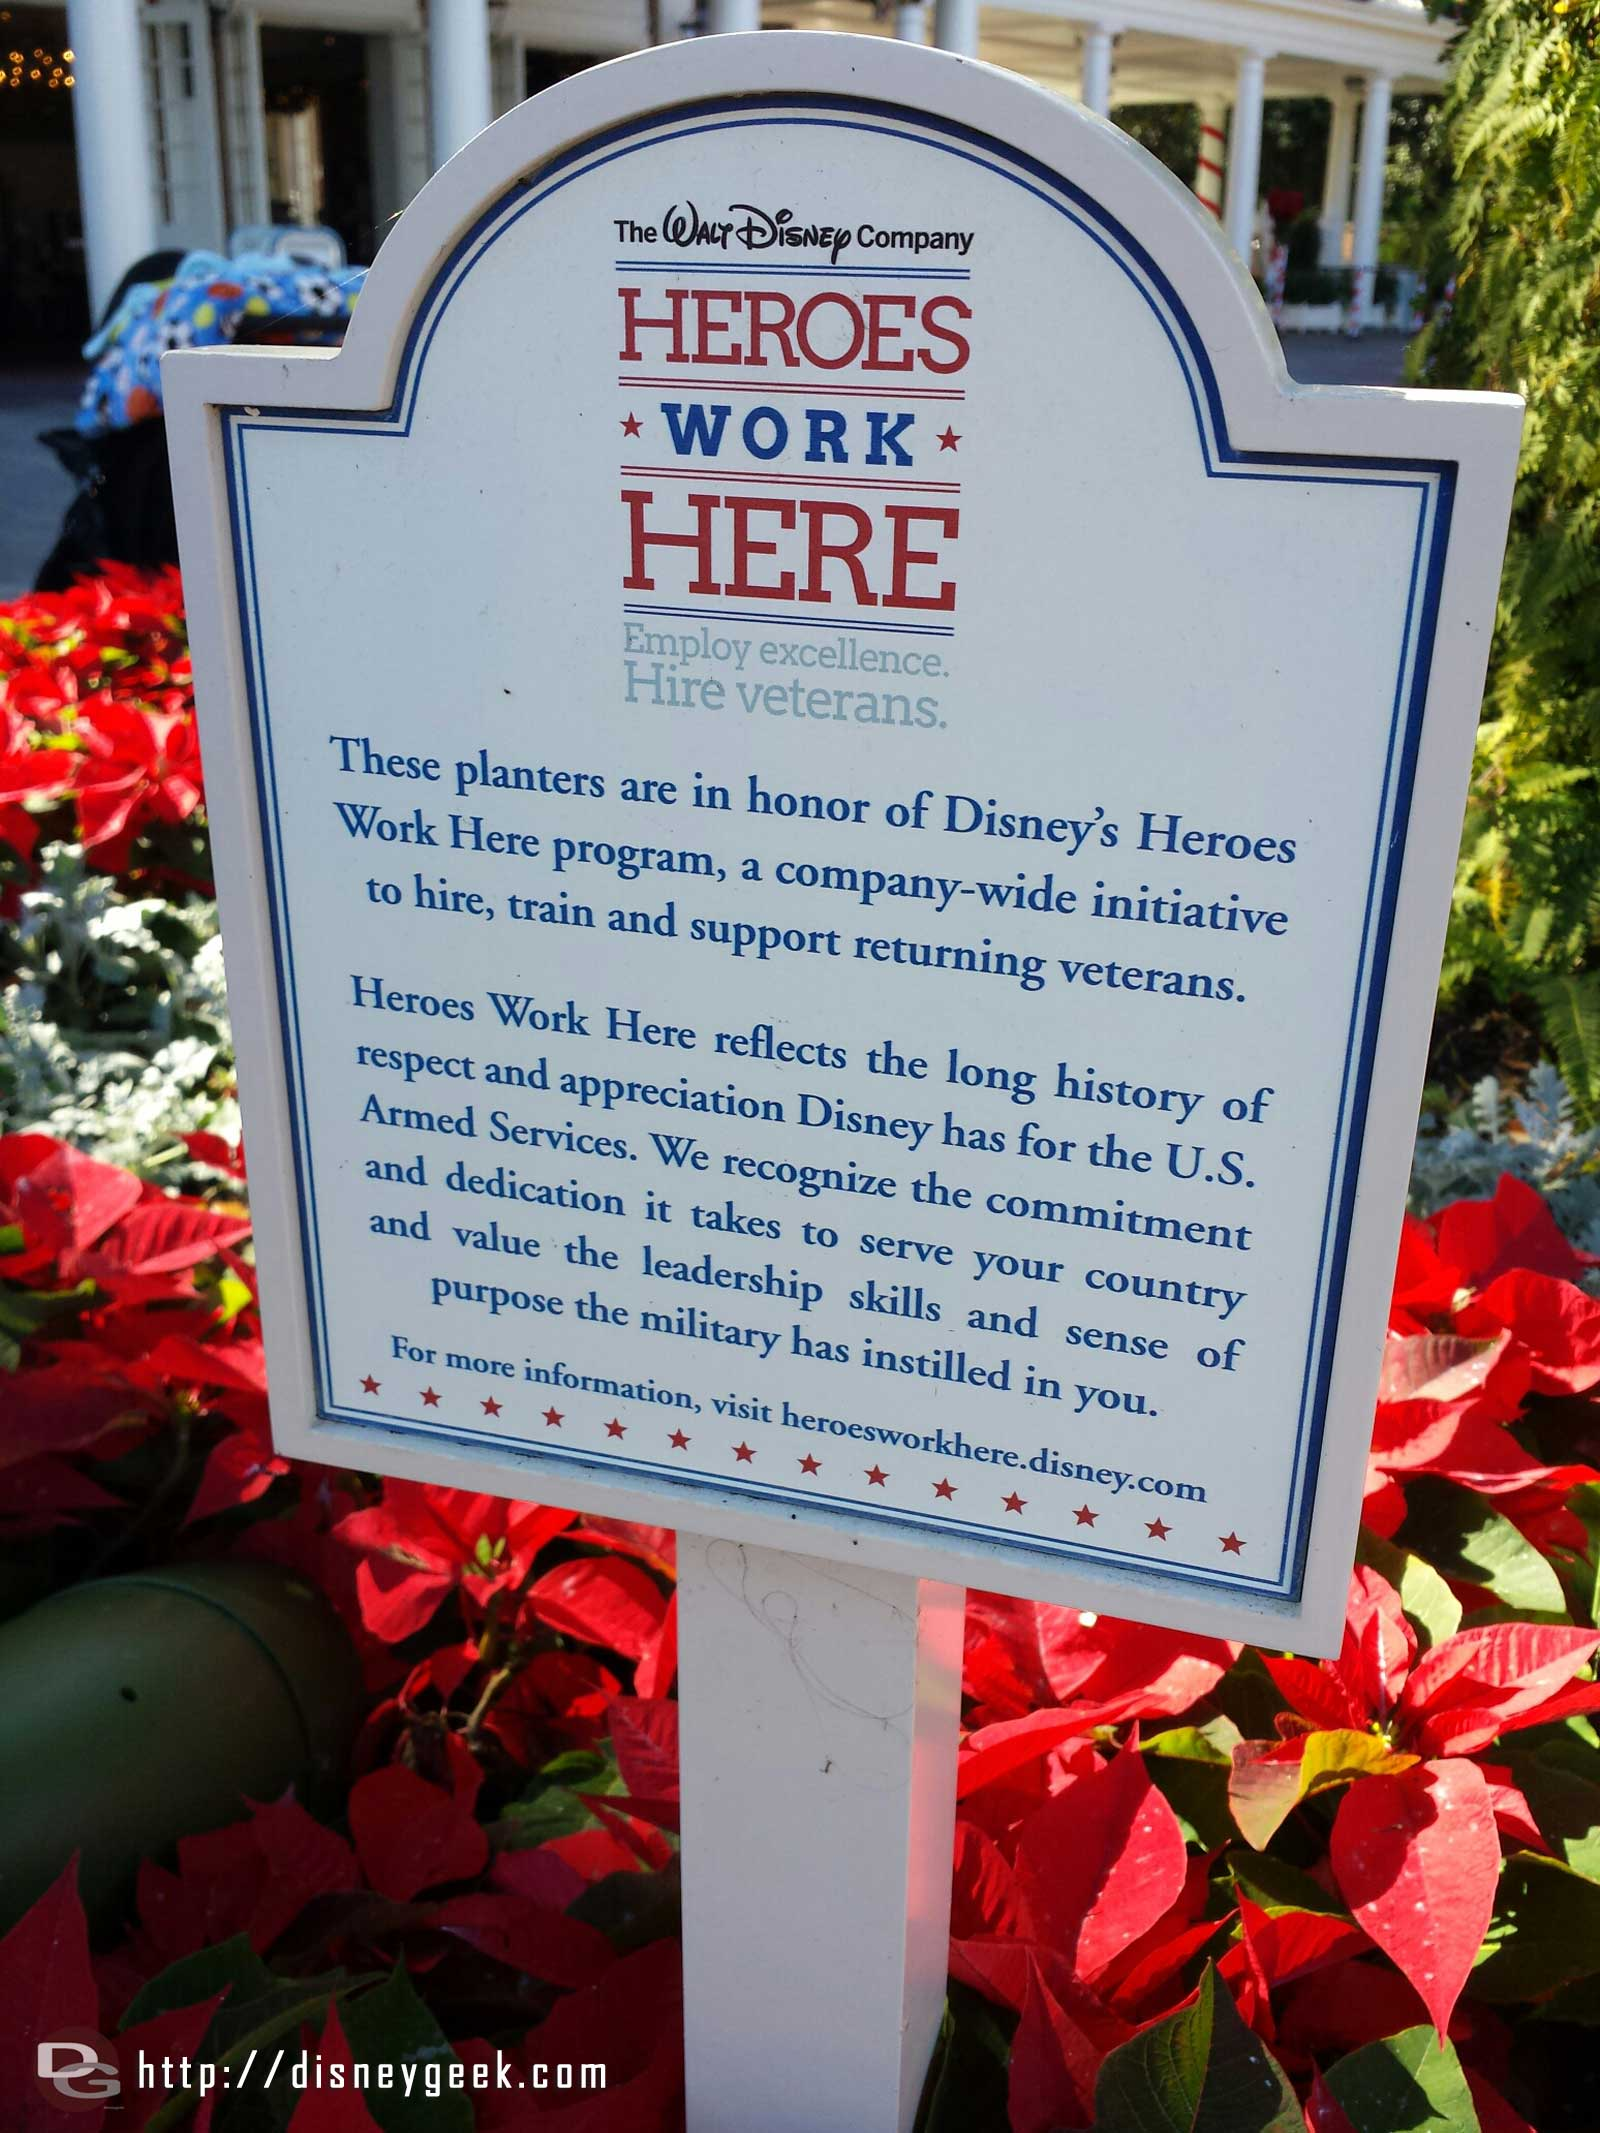 Heros Work Here program sign in one of the American Adventure planters #Epcot